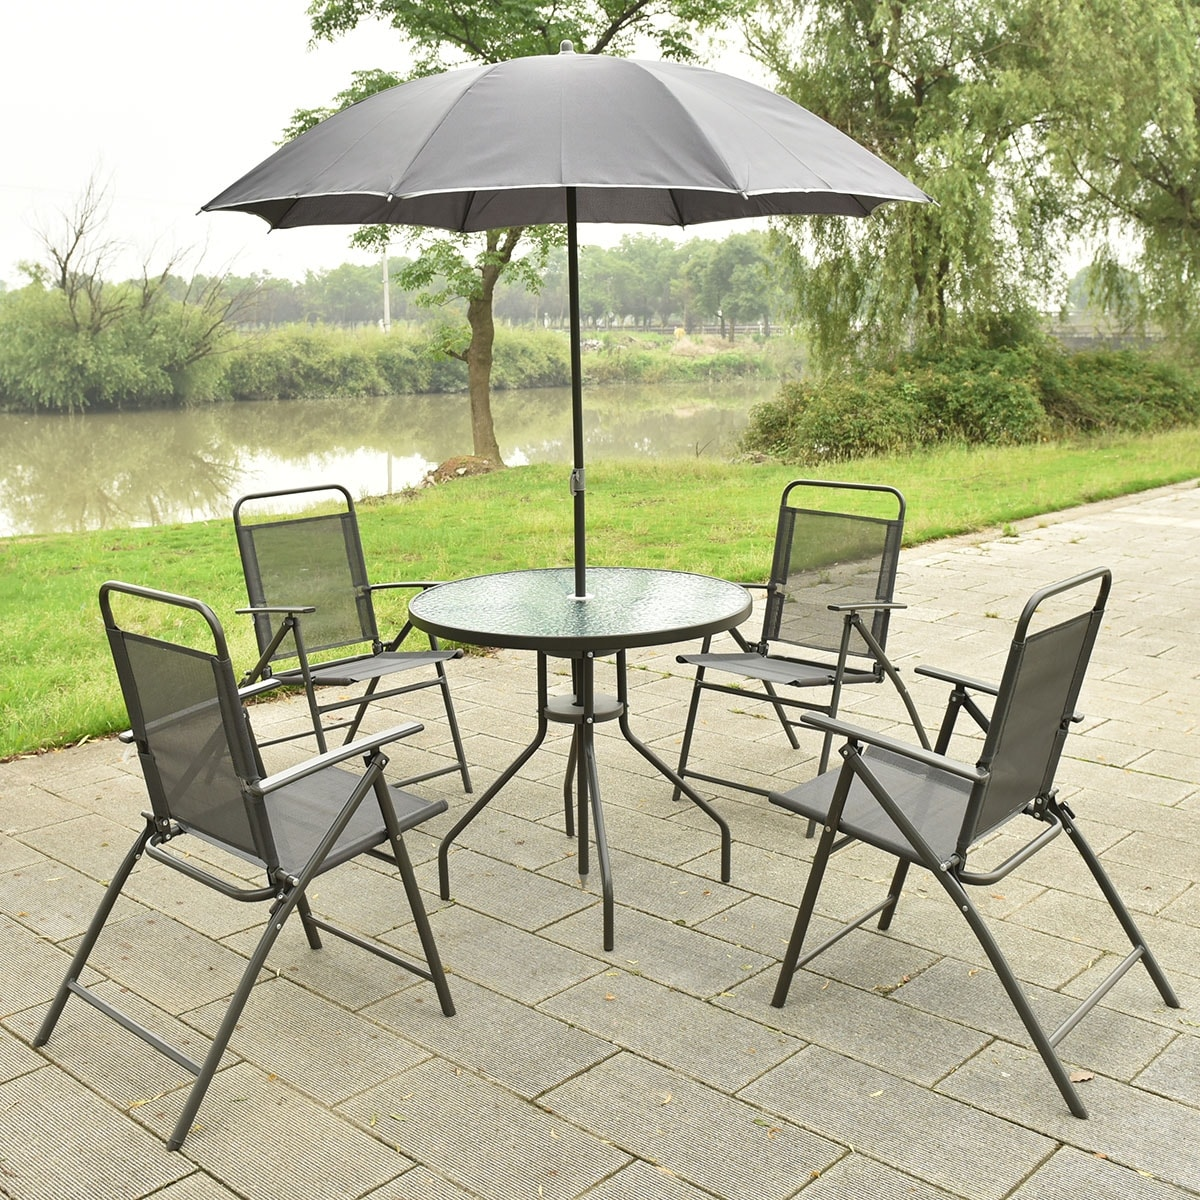 Costway 6 PCS Patio Garden Set Furniture Umbrella Gray with 4 Folding Chairs Table - Free Shipping Today - Overstock - 23192854 & Costway 6 PCS Patio Garden Set Furniture Umbrella Gray with 4 ...